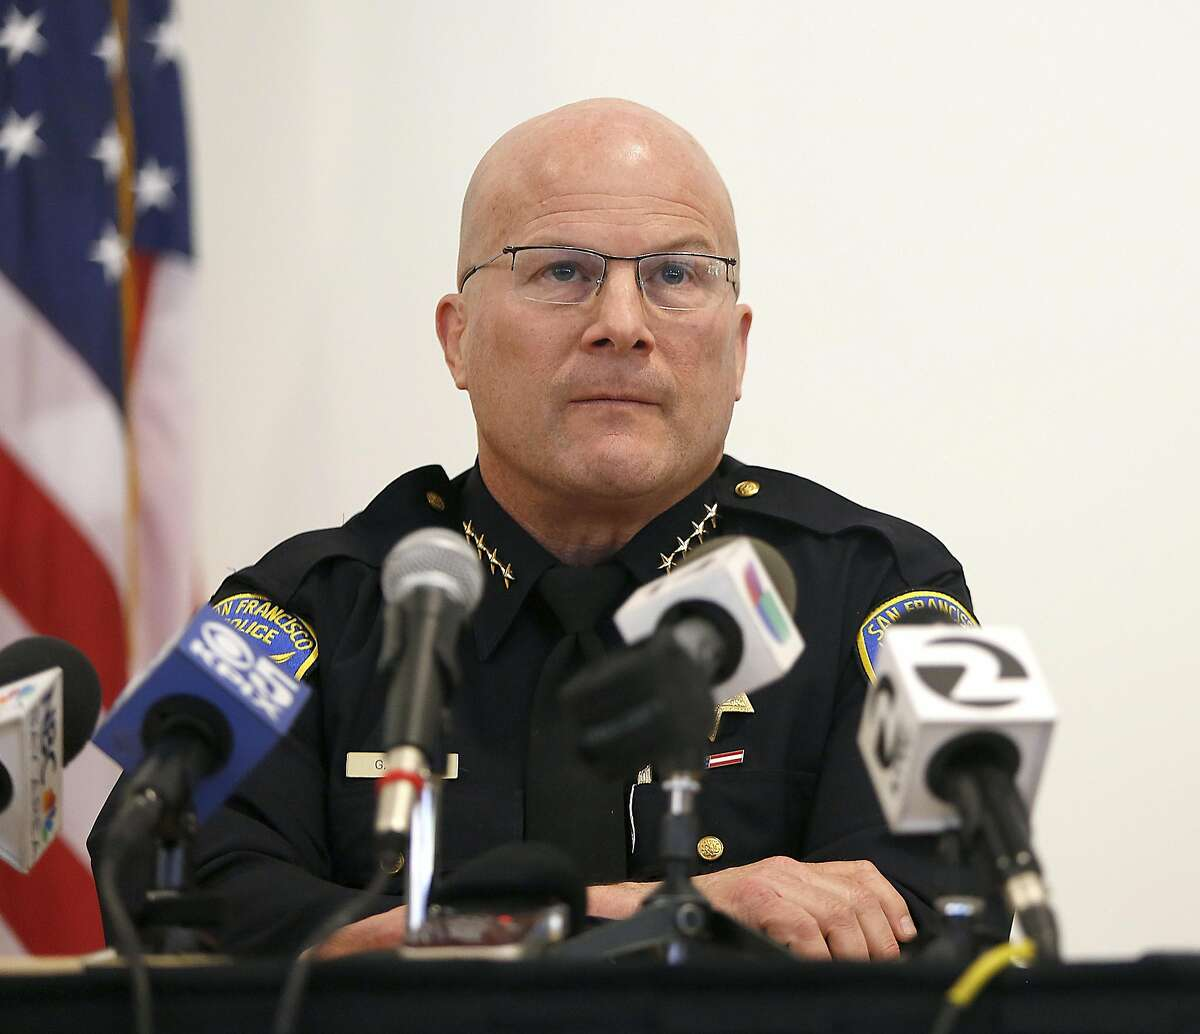 San Francisco police chief Greg Suhr listens to the public at the Union Local Hall during a town hall meeting regarding the San Francisco Police Department's officer-involved shooting of Luis Gongora, a 45-year-old homeless man in San Francisco, California on wednesday, april 13, 2016.